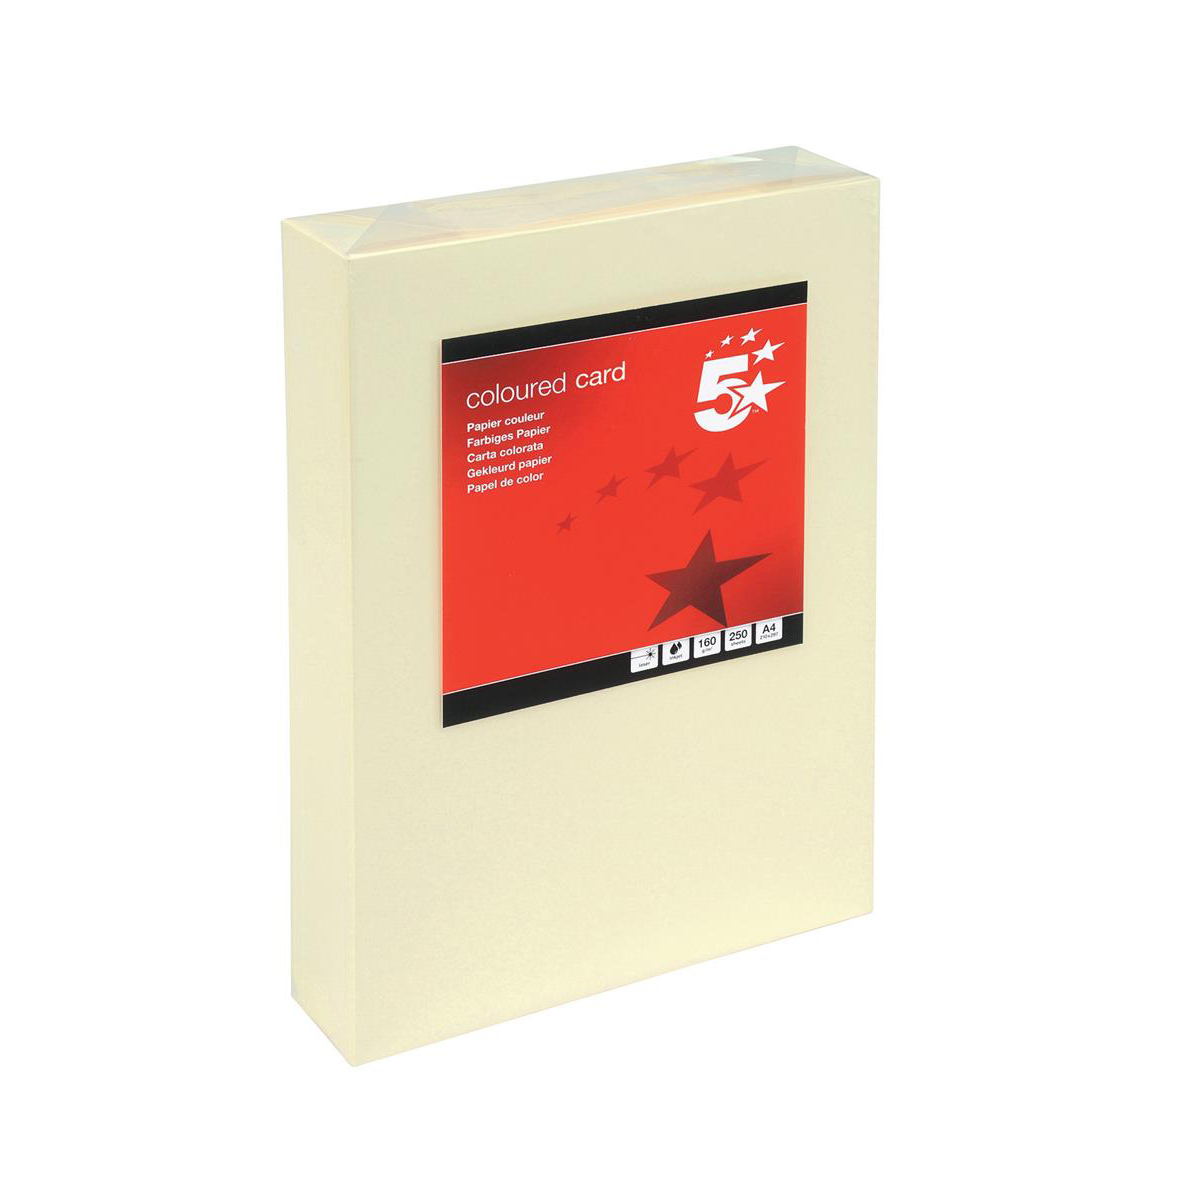 Card (160g+) 5 Star Office Coloured Card Multifunctional 160gsm A4 Light Cream 250 Sheets